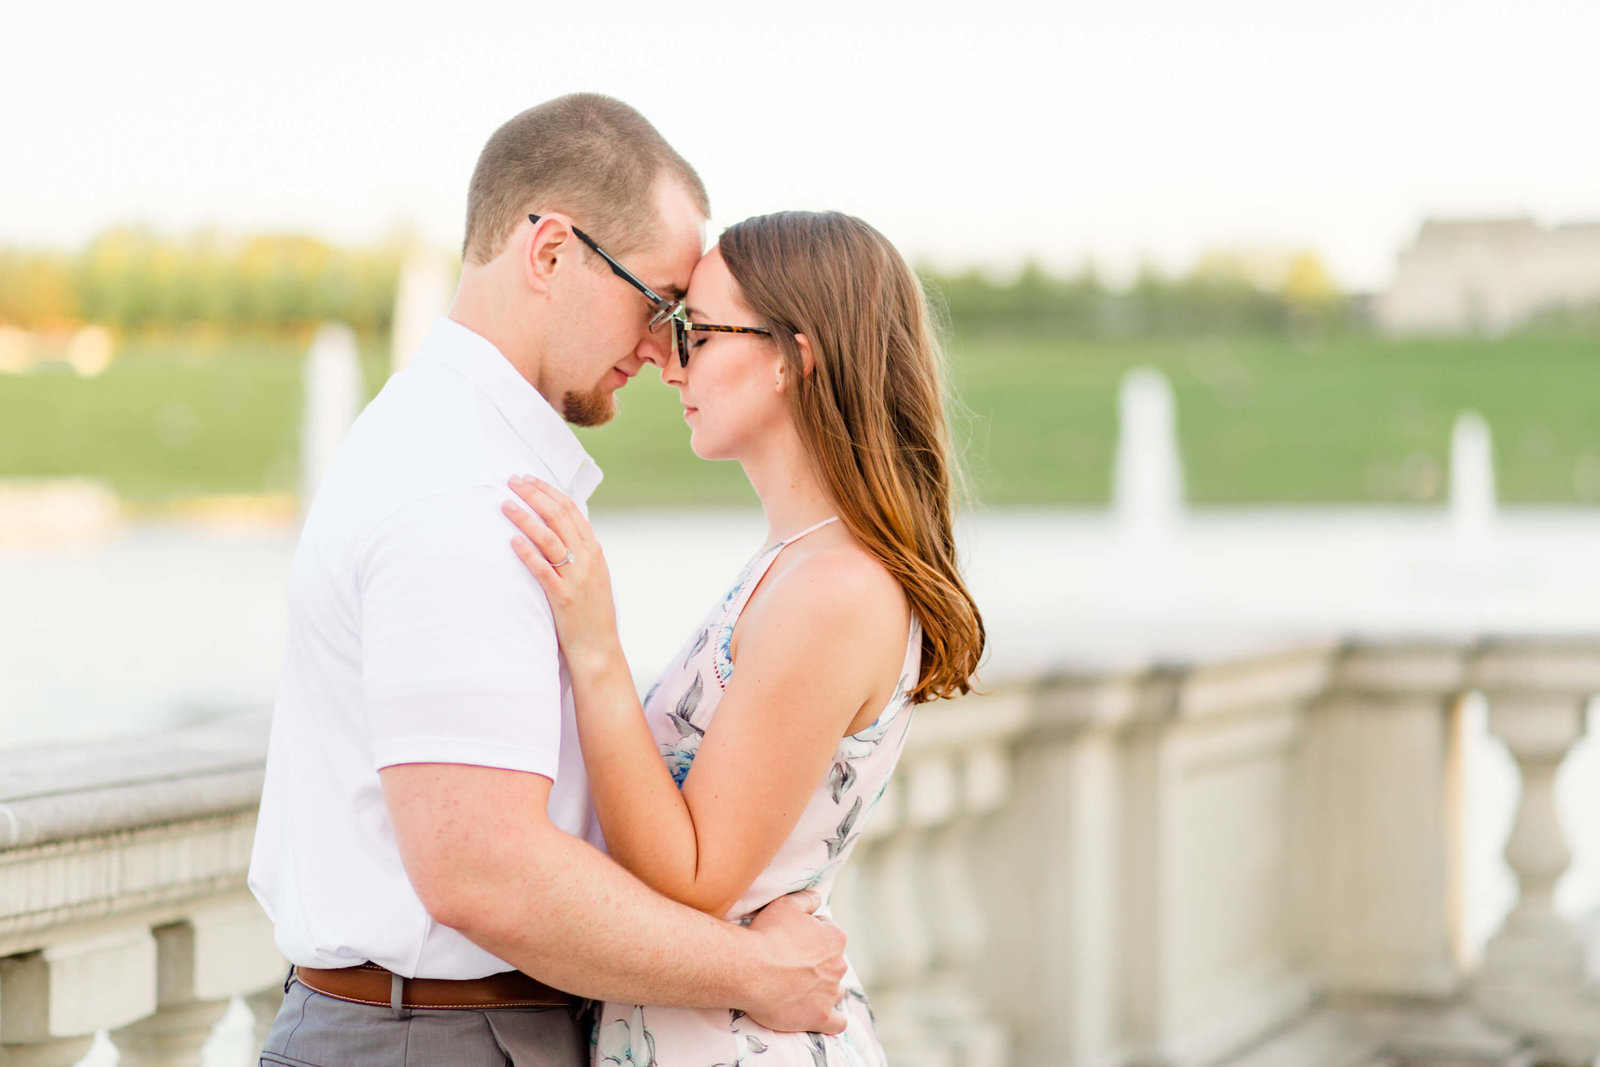 Forest-park-st-louis-spring-engagement-session-flowers11